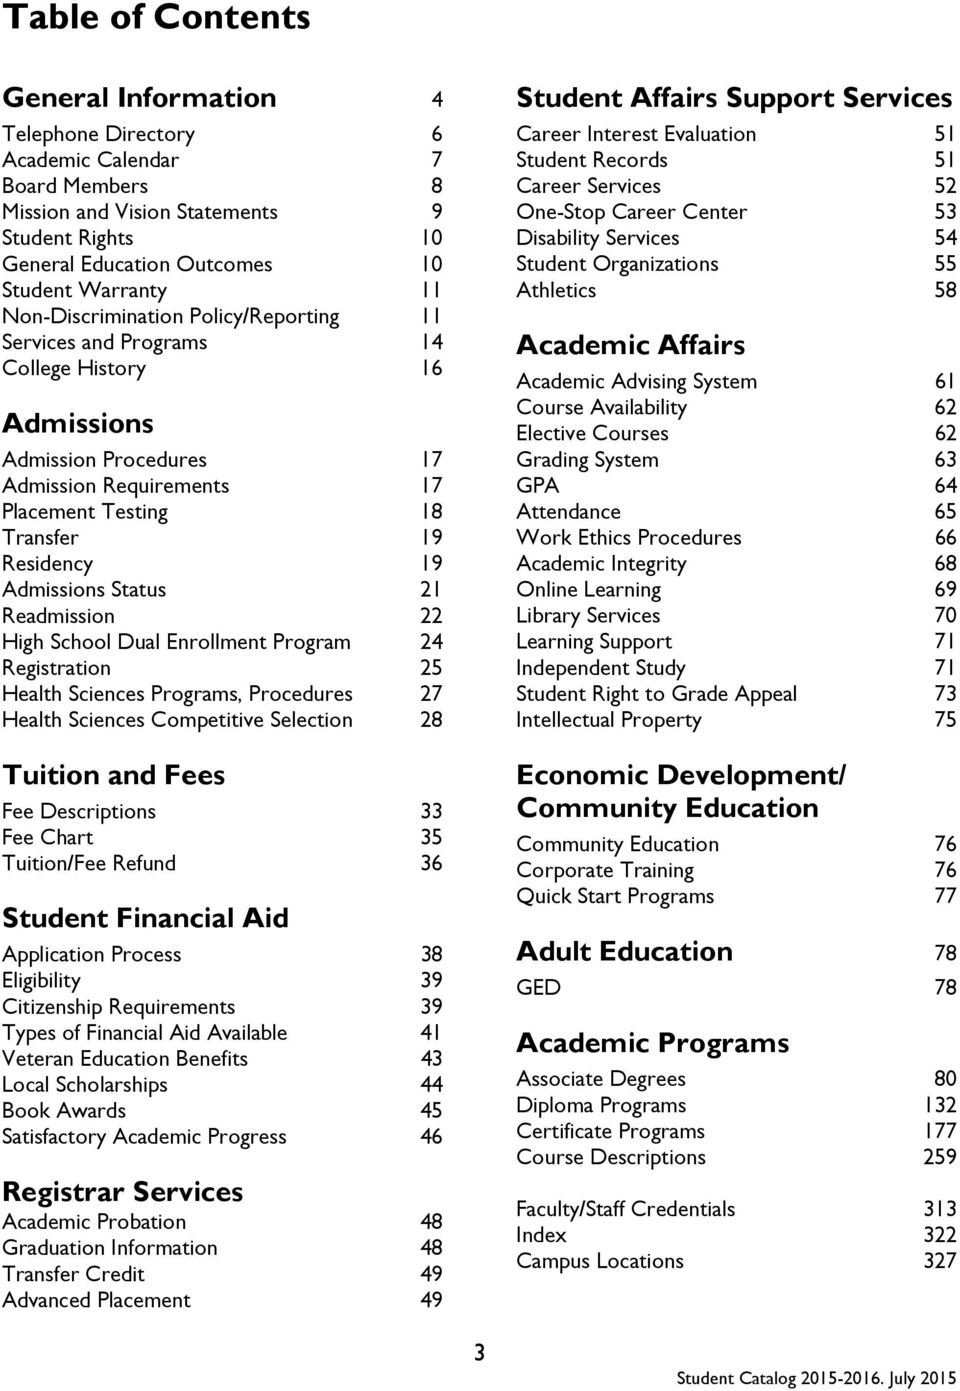 Admissions Status 21 Readmission 22 High School Dual Enrollment Program 24 Registration 25 Health Sciences Programs, Procedures 27 Health Sciences Competitive Selection 28 Tuition and Fees Fee